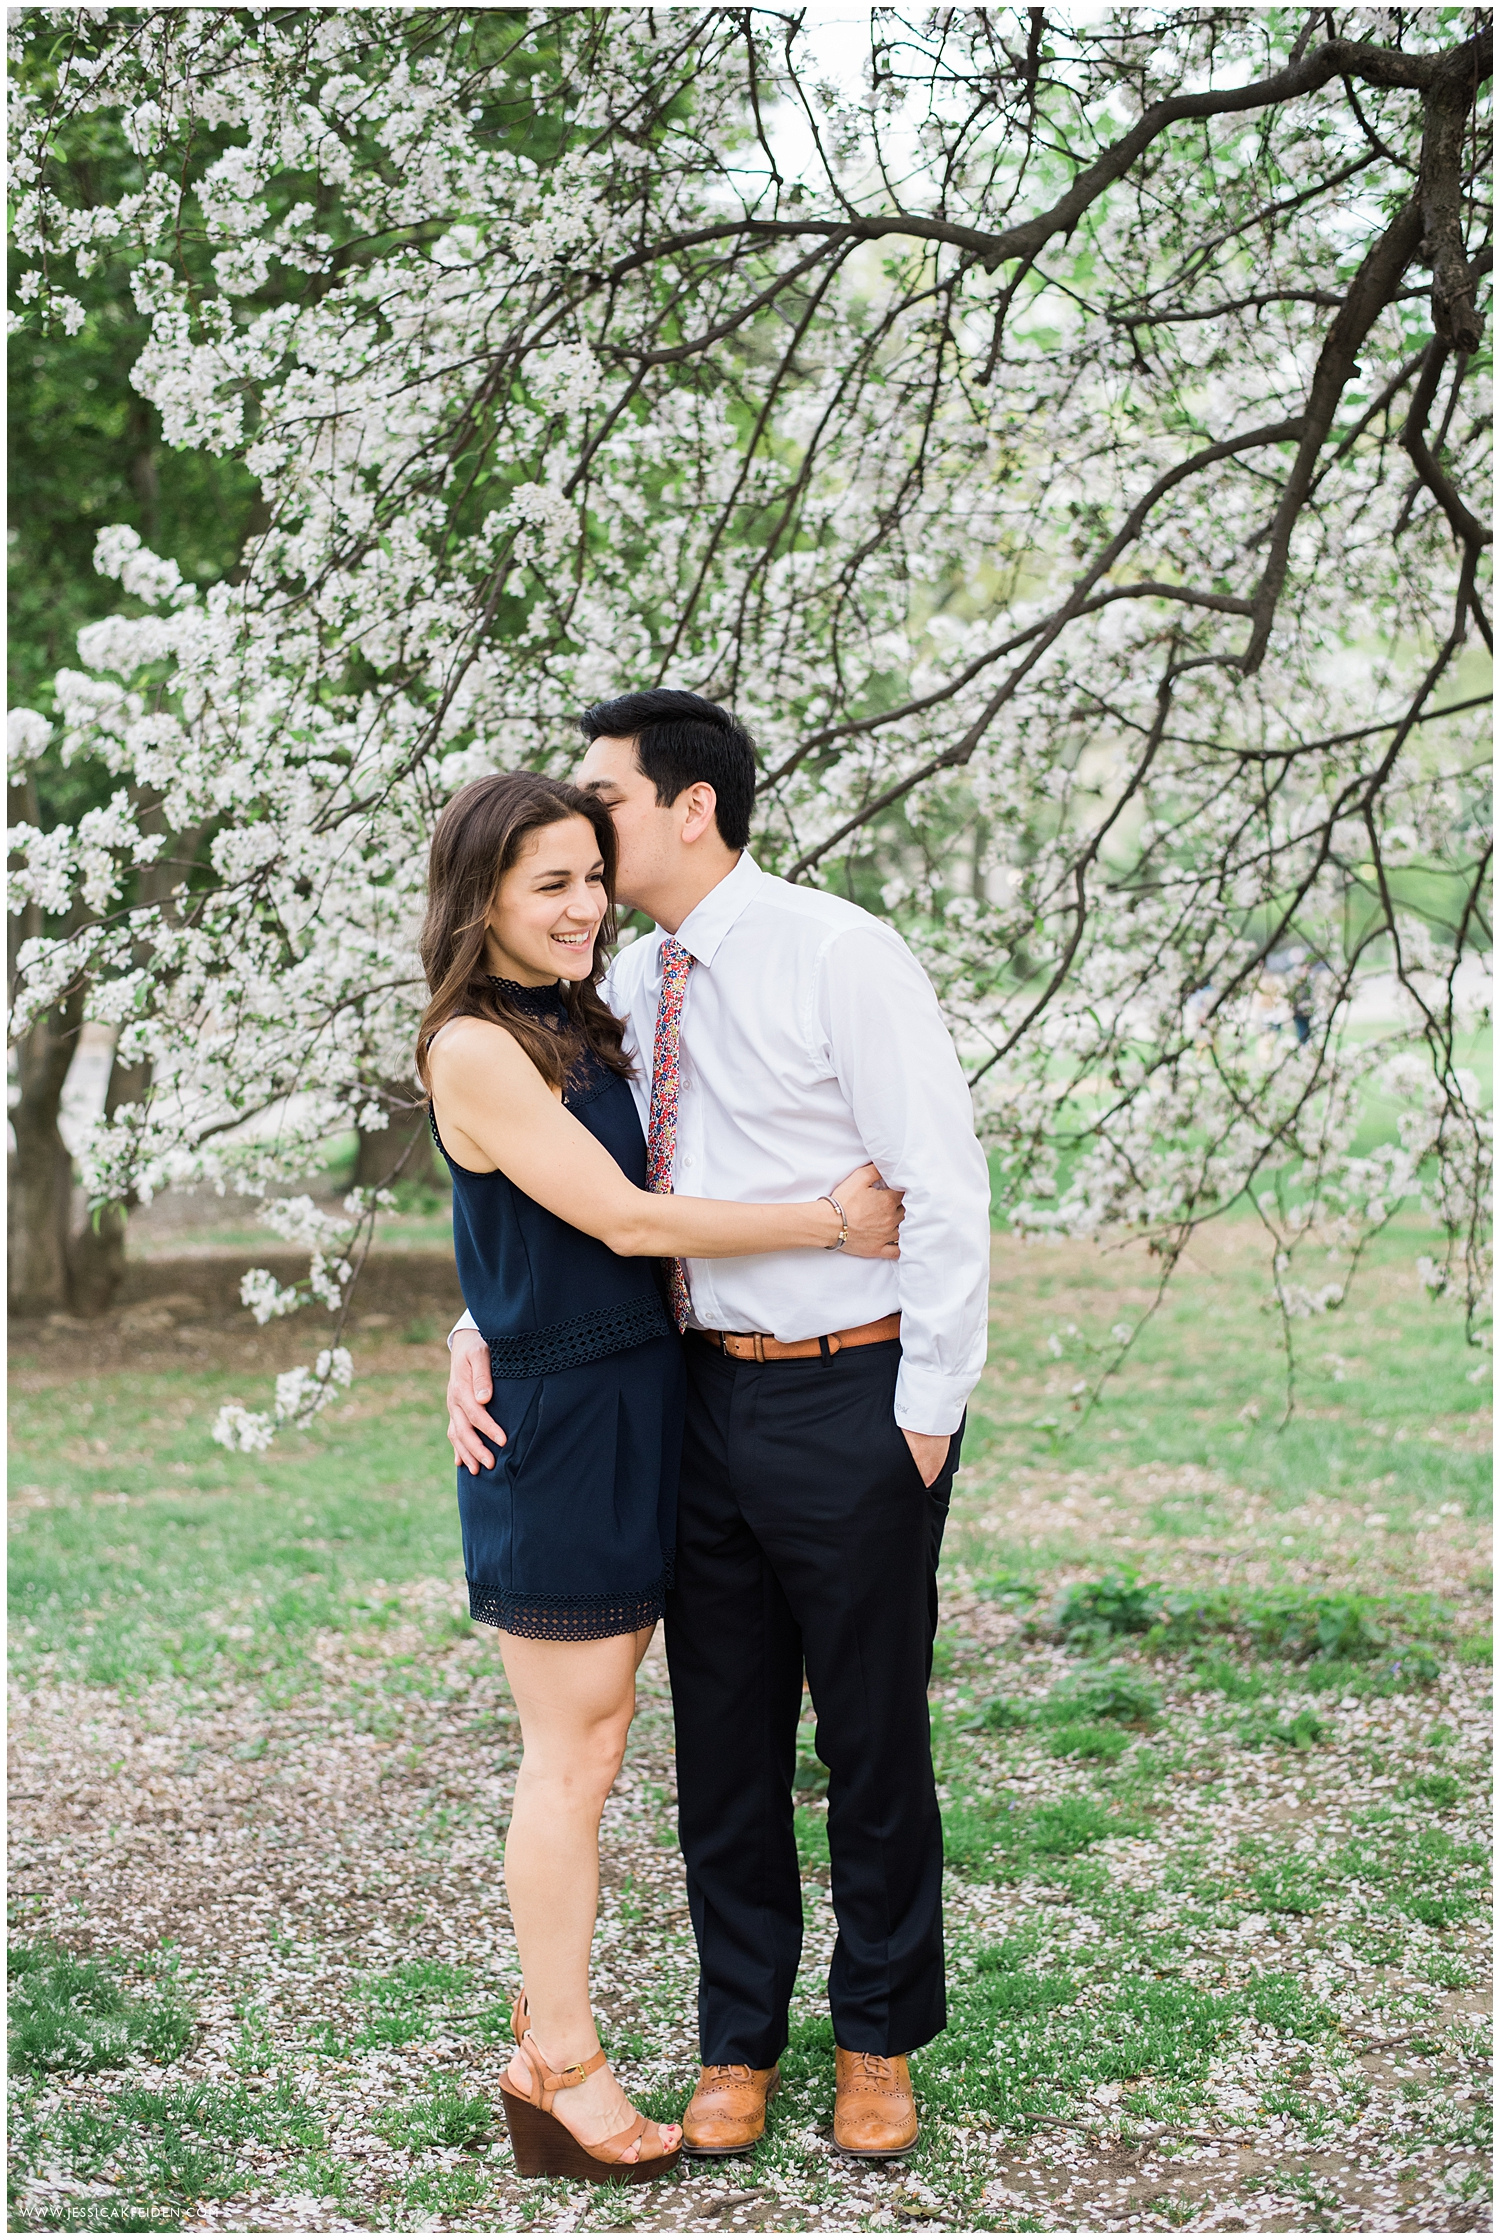 Jessica K Feiden Photography_Central Park NYC Engagement Session_0013.jpg